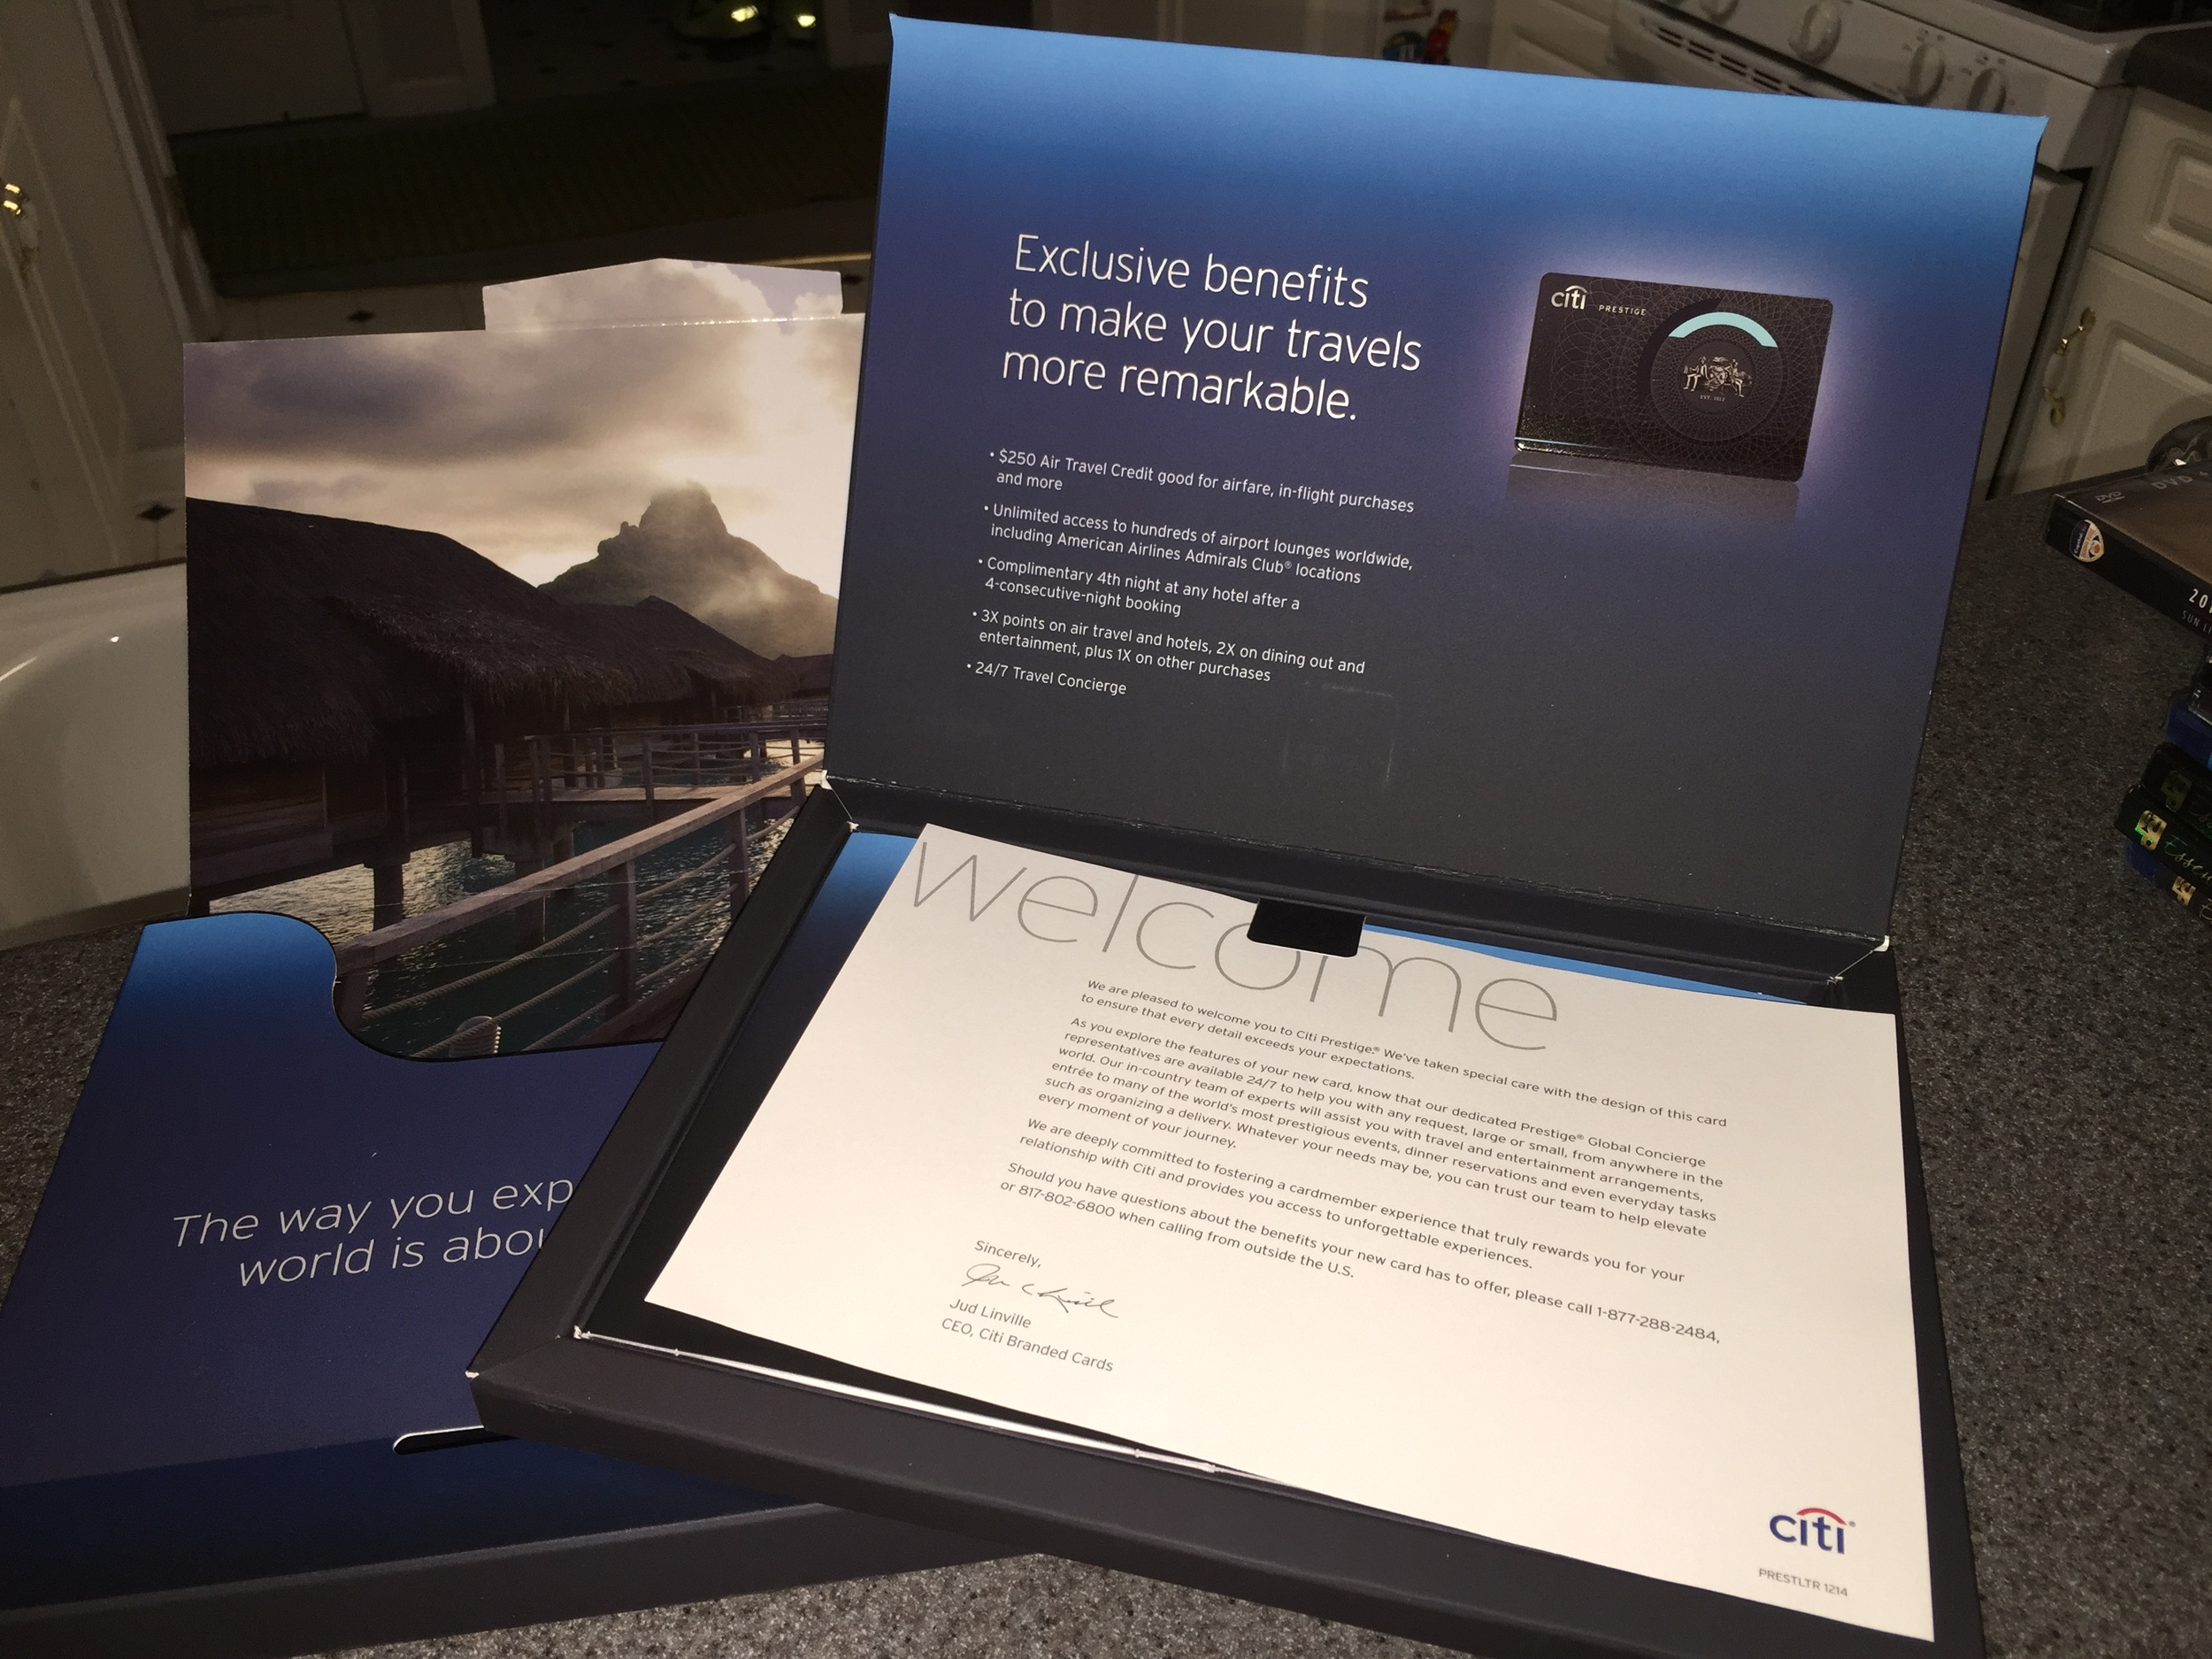 Citi Prestige Card documentation